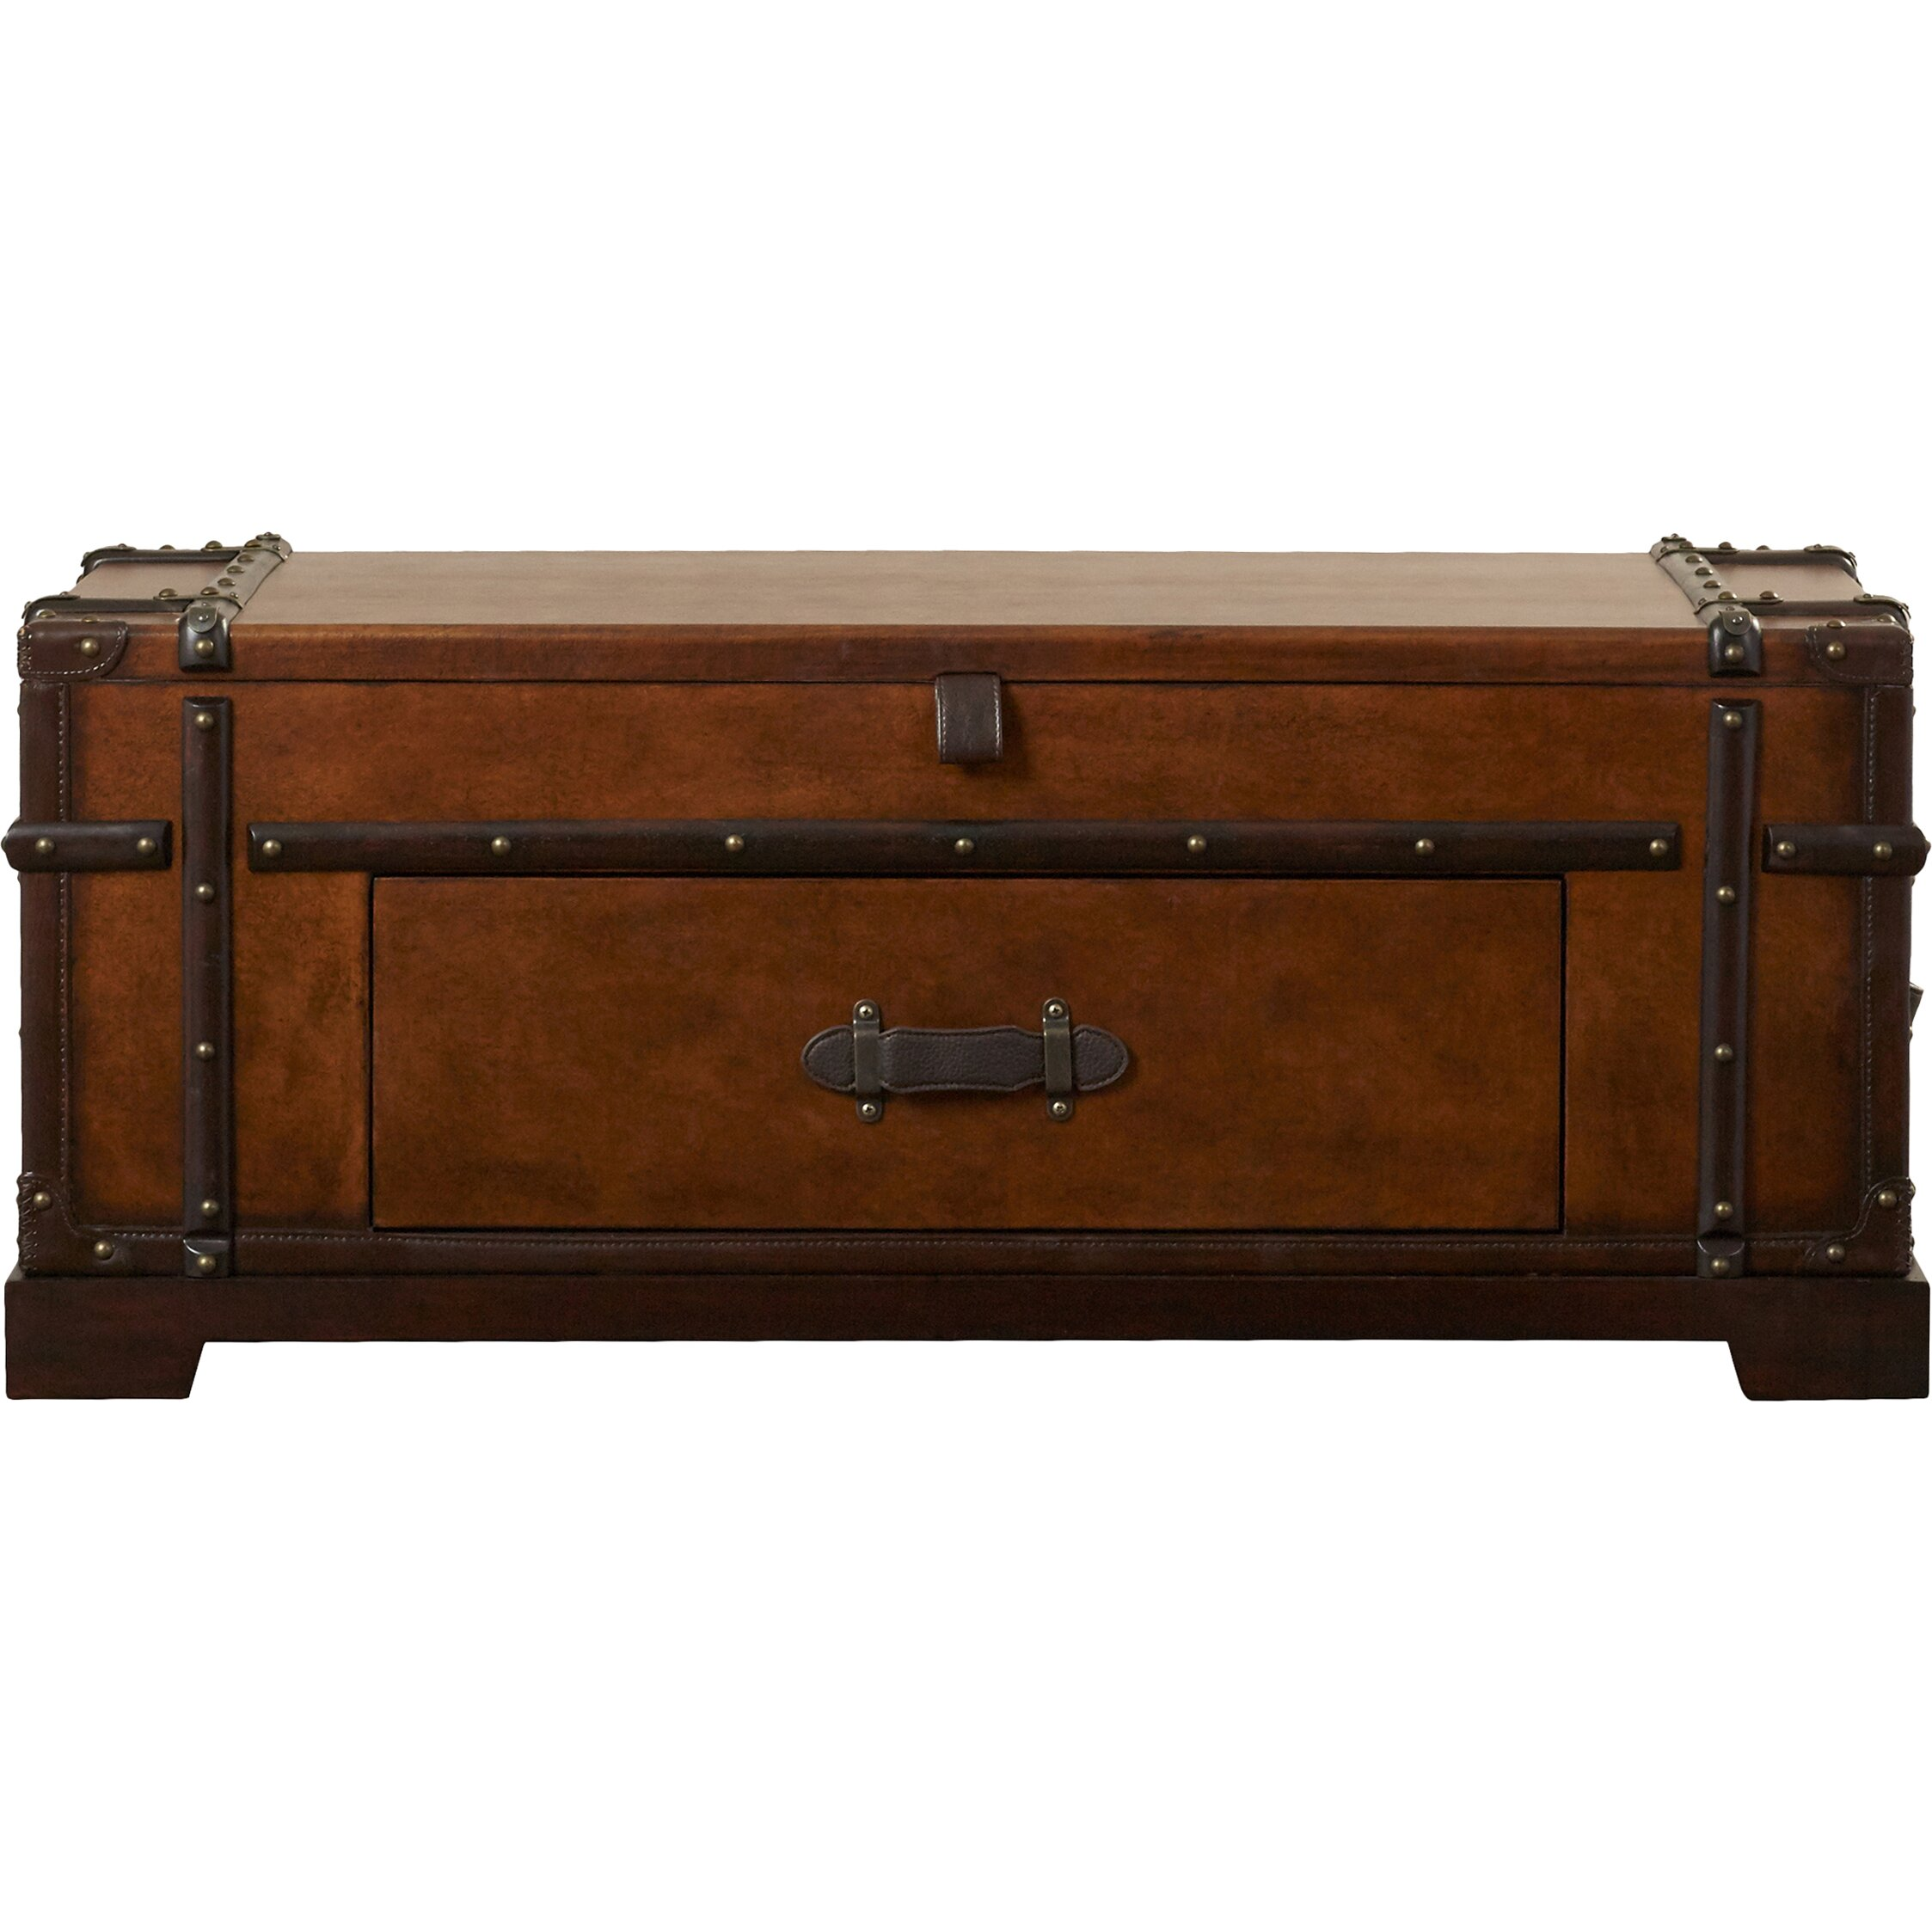 Barrett Trunk Coffee Table With Lift Top: Darby Home Co Colby Lane Coffee Table Trunk With Lift Top